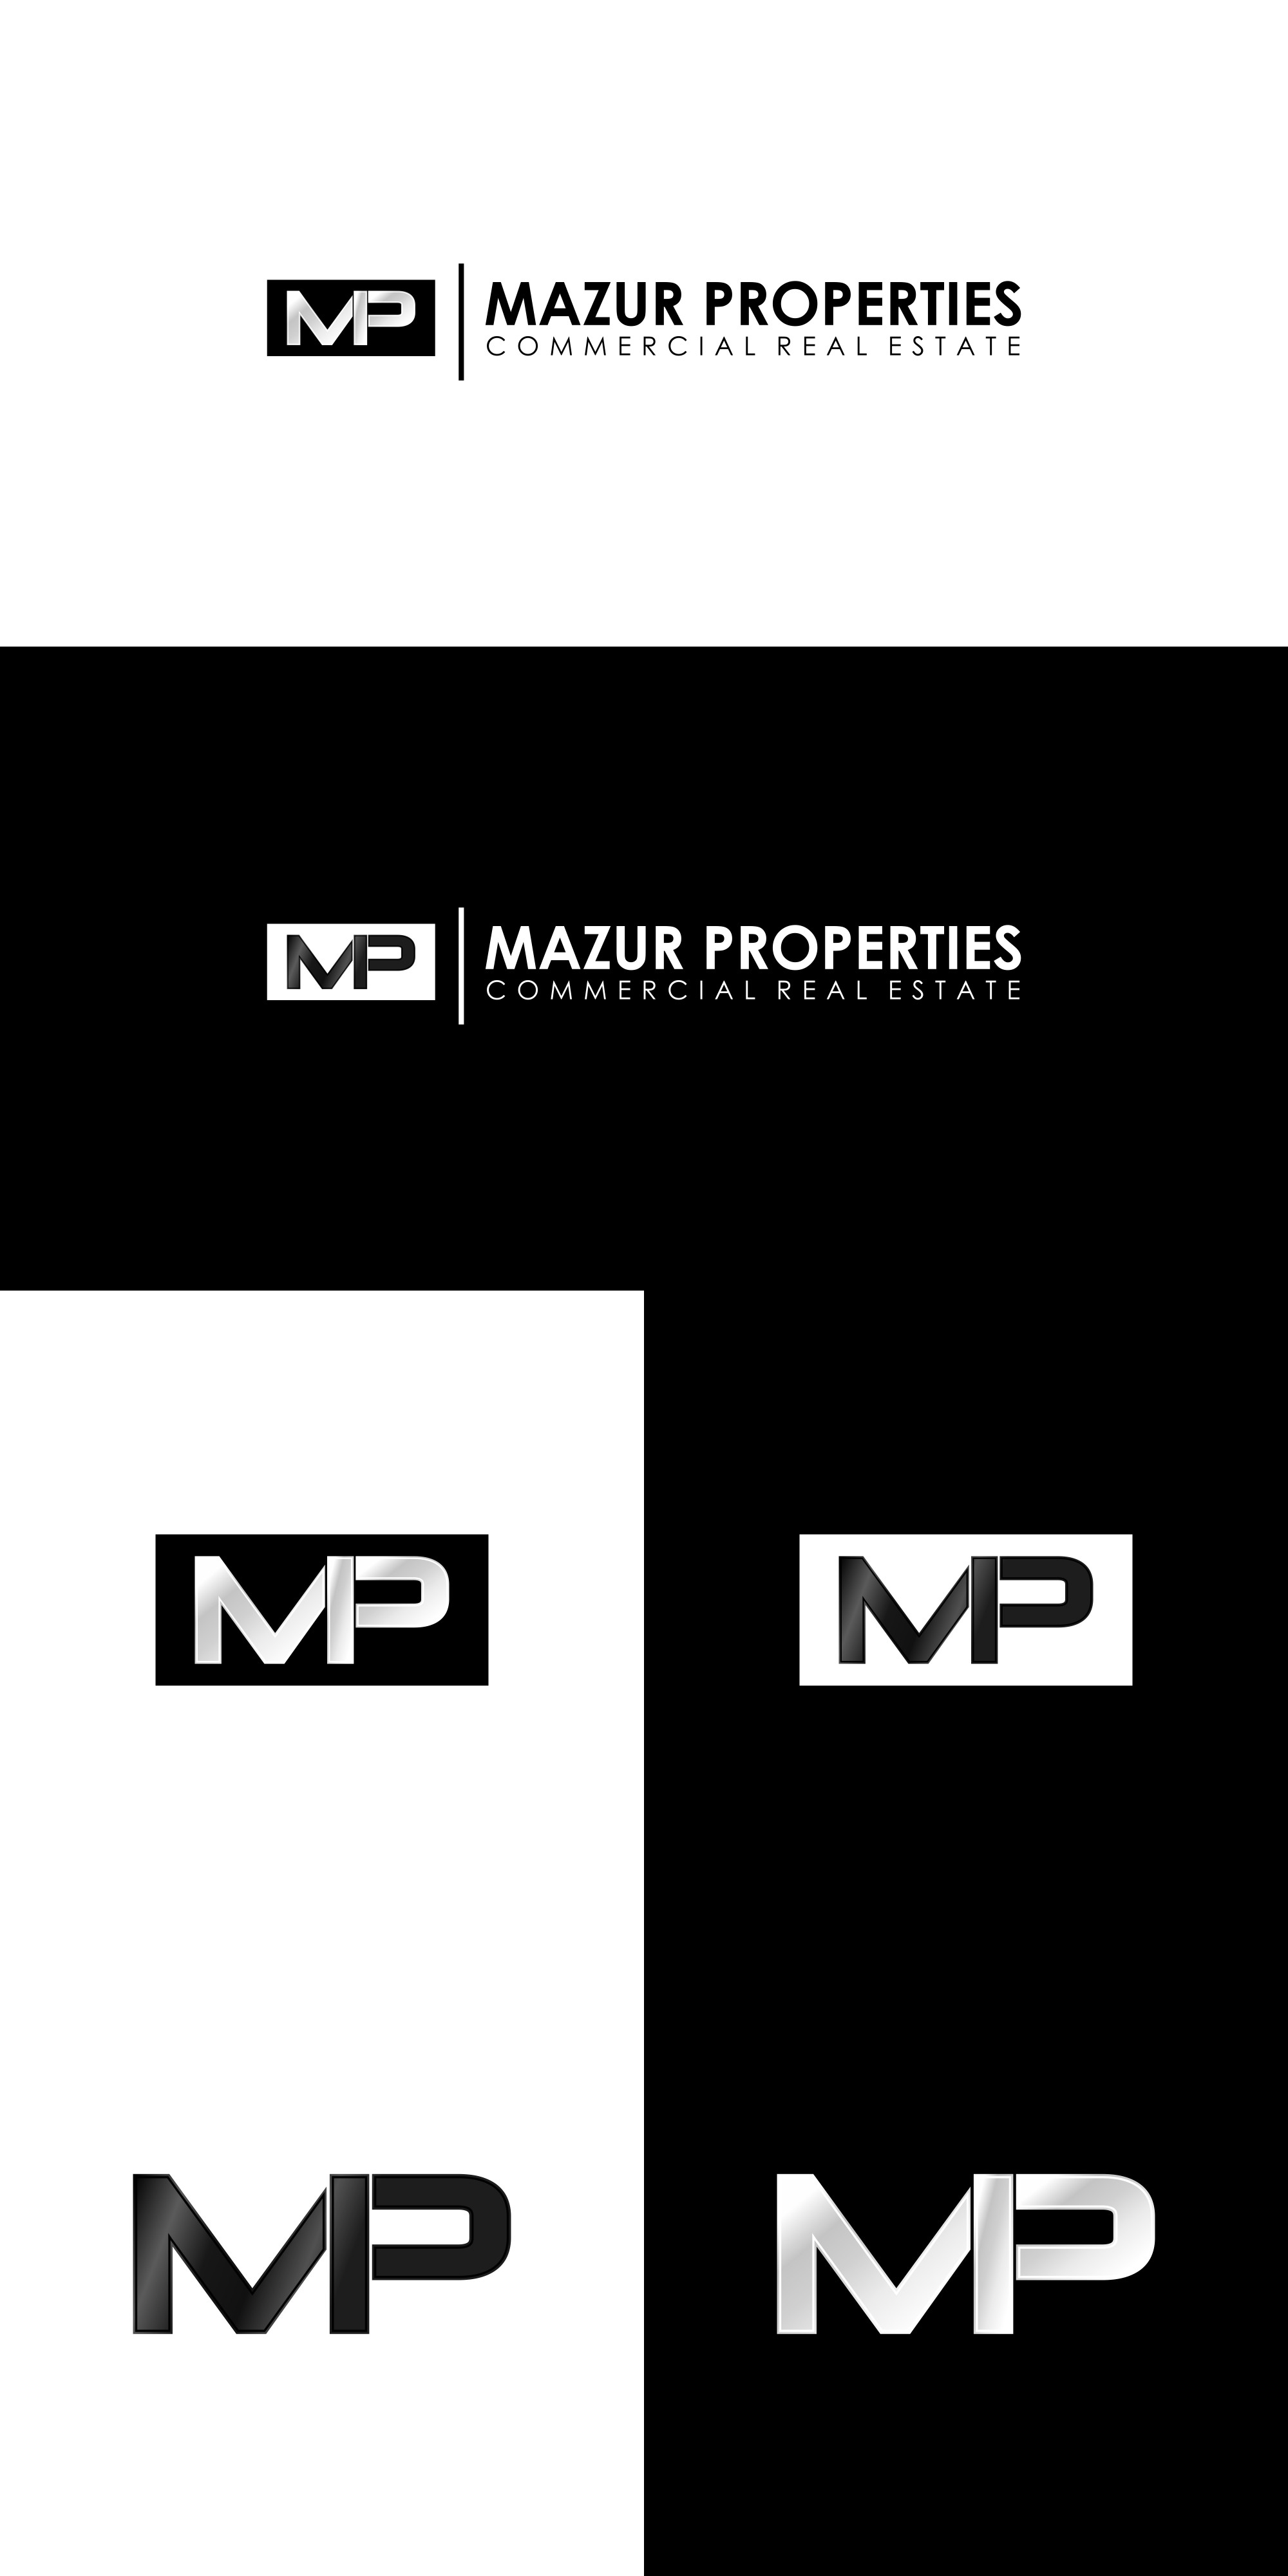 Mazur Properties commercial real estate